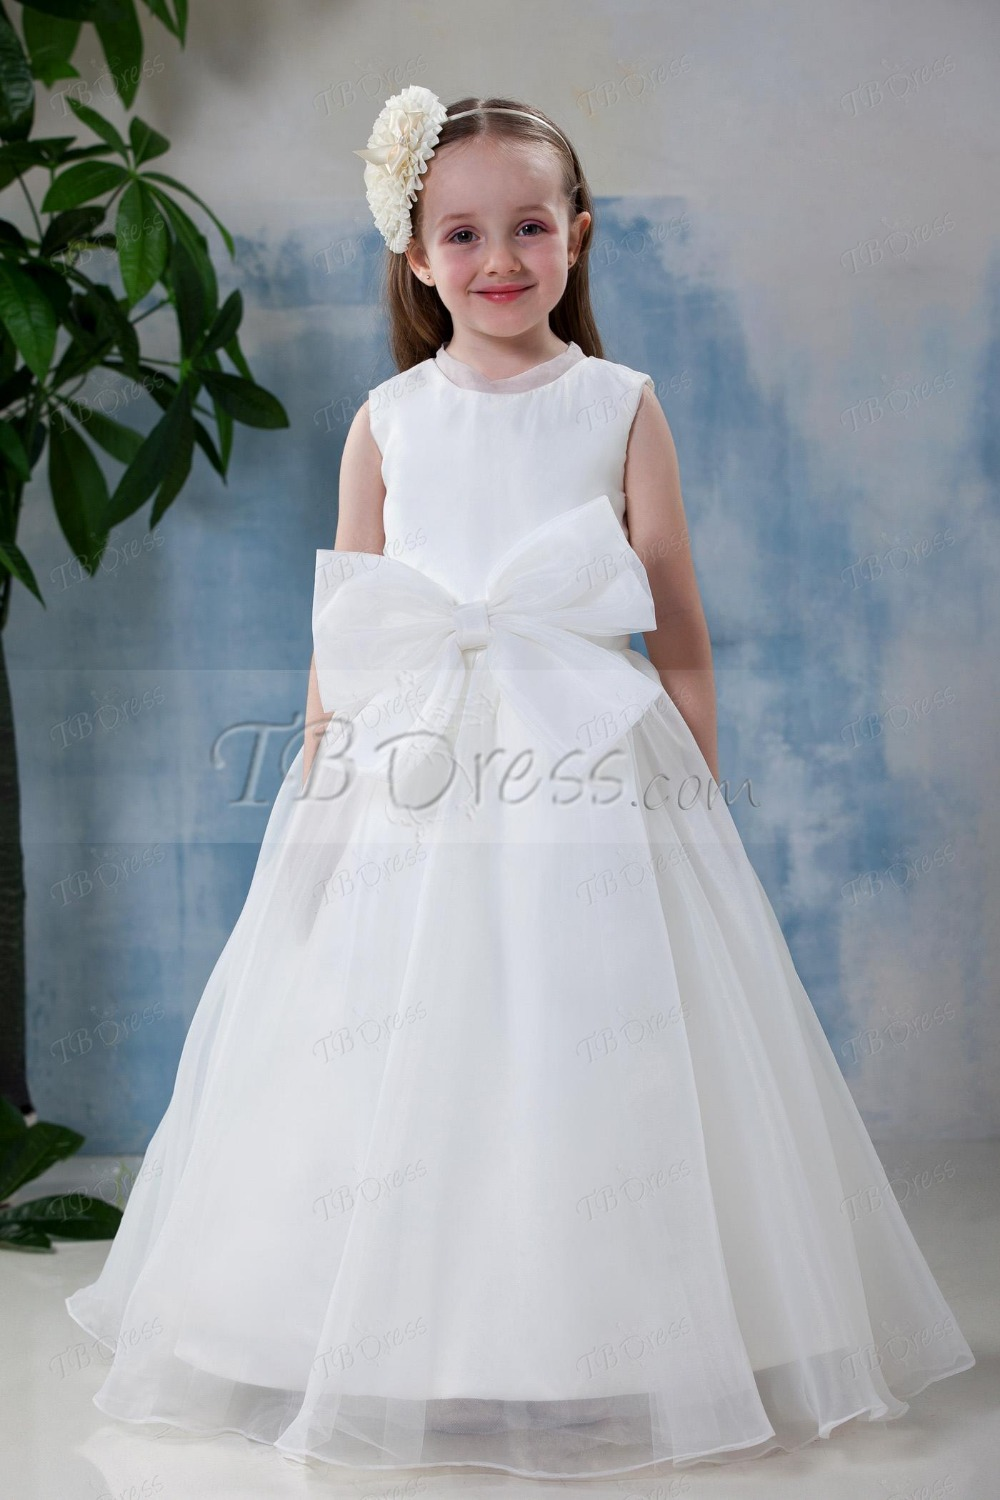 Pretty Satin With Lace Sleeveless With A Bow Princess Floor-Length Flower Girl Dress<br><br>Aliexpress